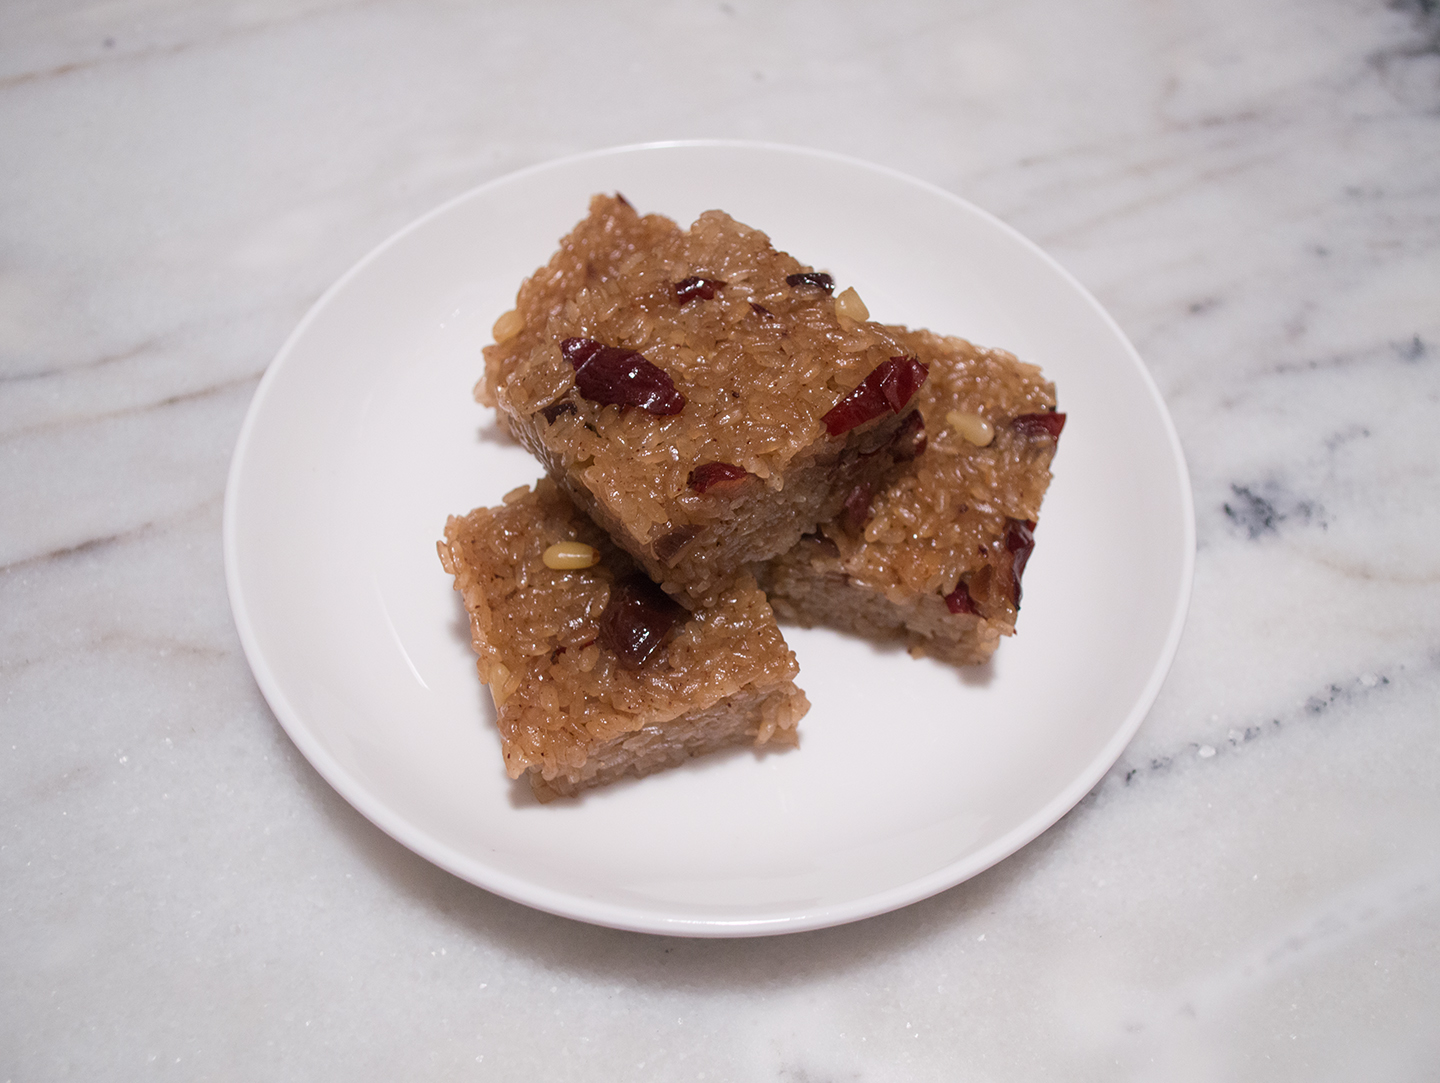 Yaksik (약식) – Glutinous Rice Cake with Dried Fruits and Nuts